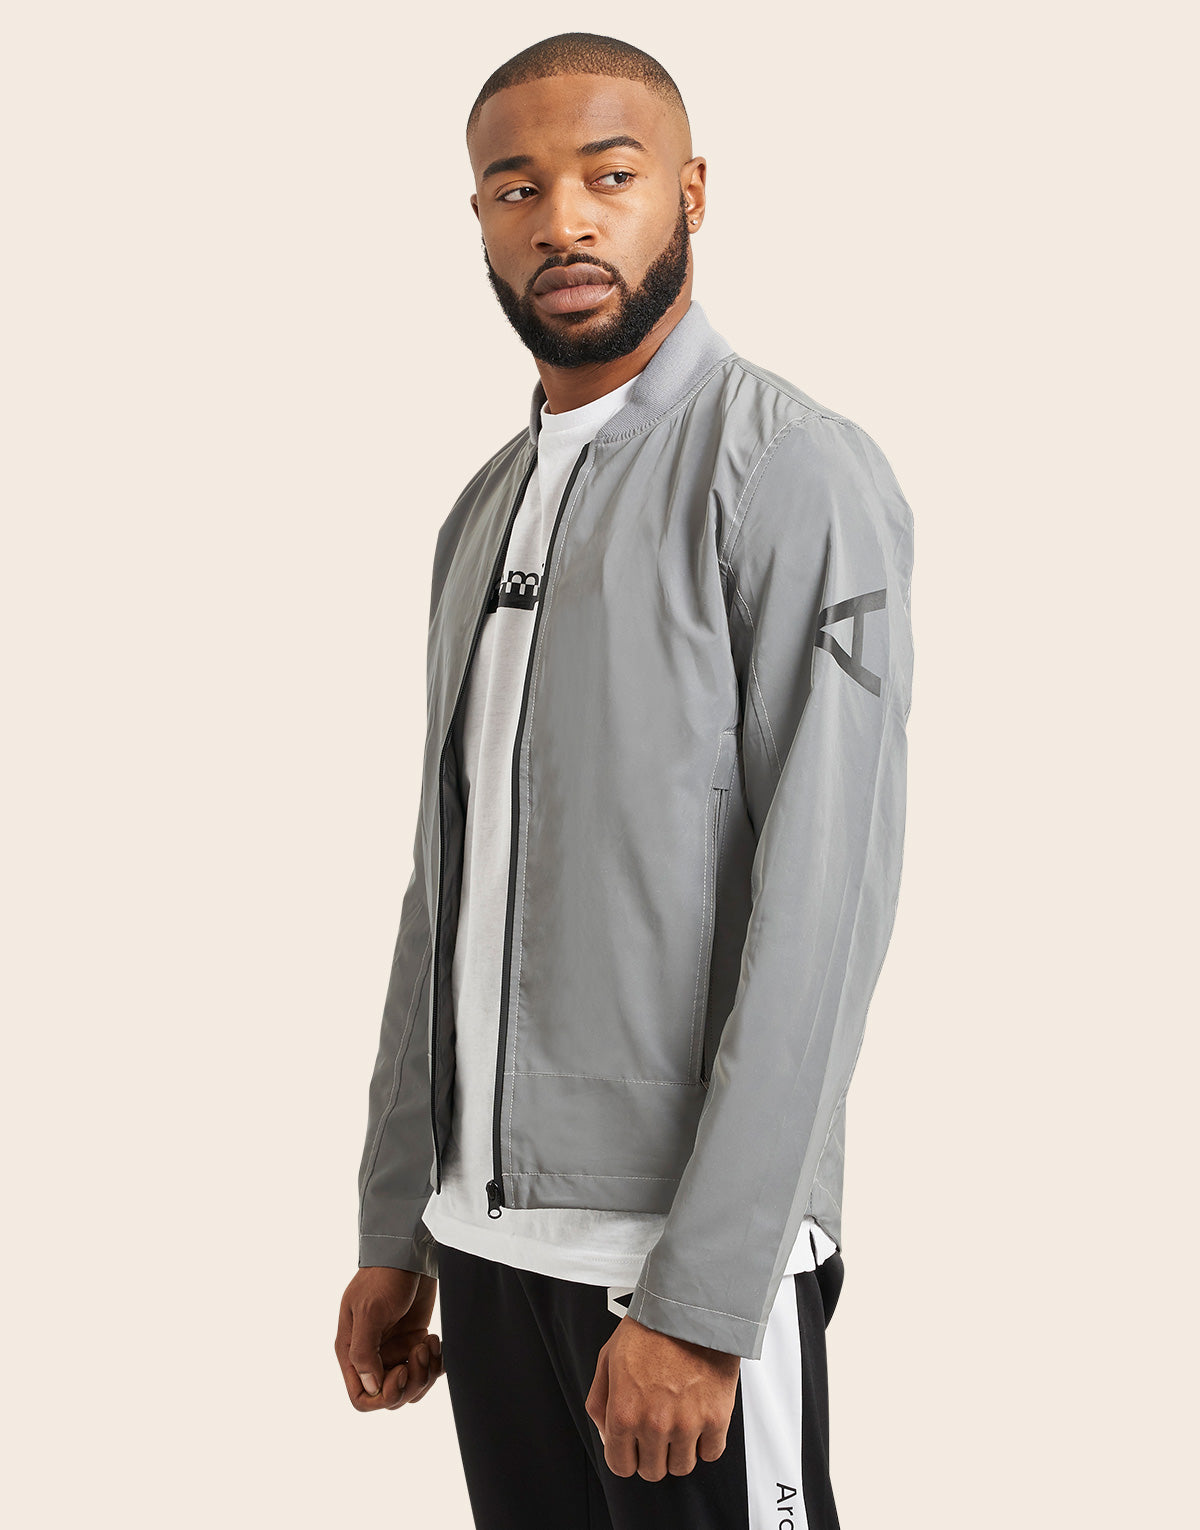 Clock Tower Reflective Bomber Jacket - Arcminute